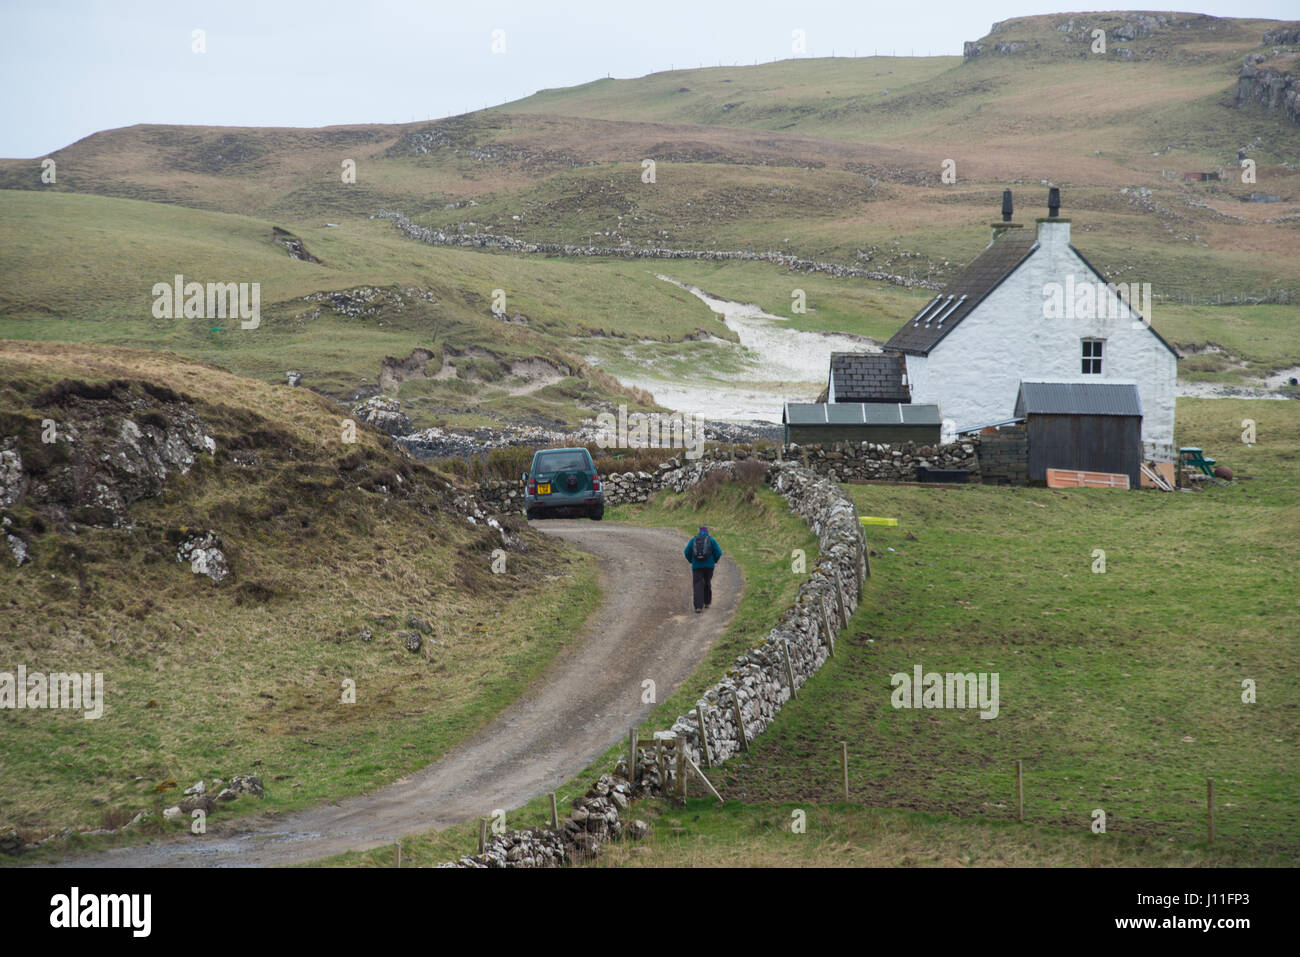 Isolated farm house on the island of Canna in the Inner Hebrides, Scotland. - Stock Image